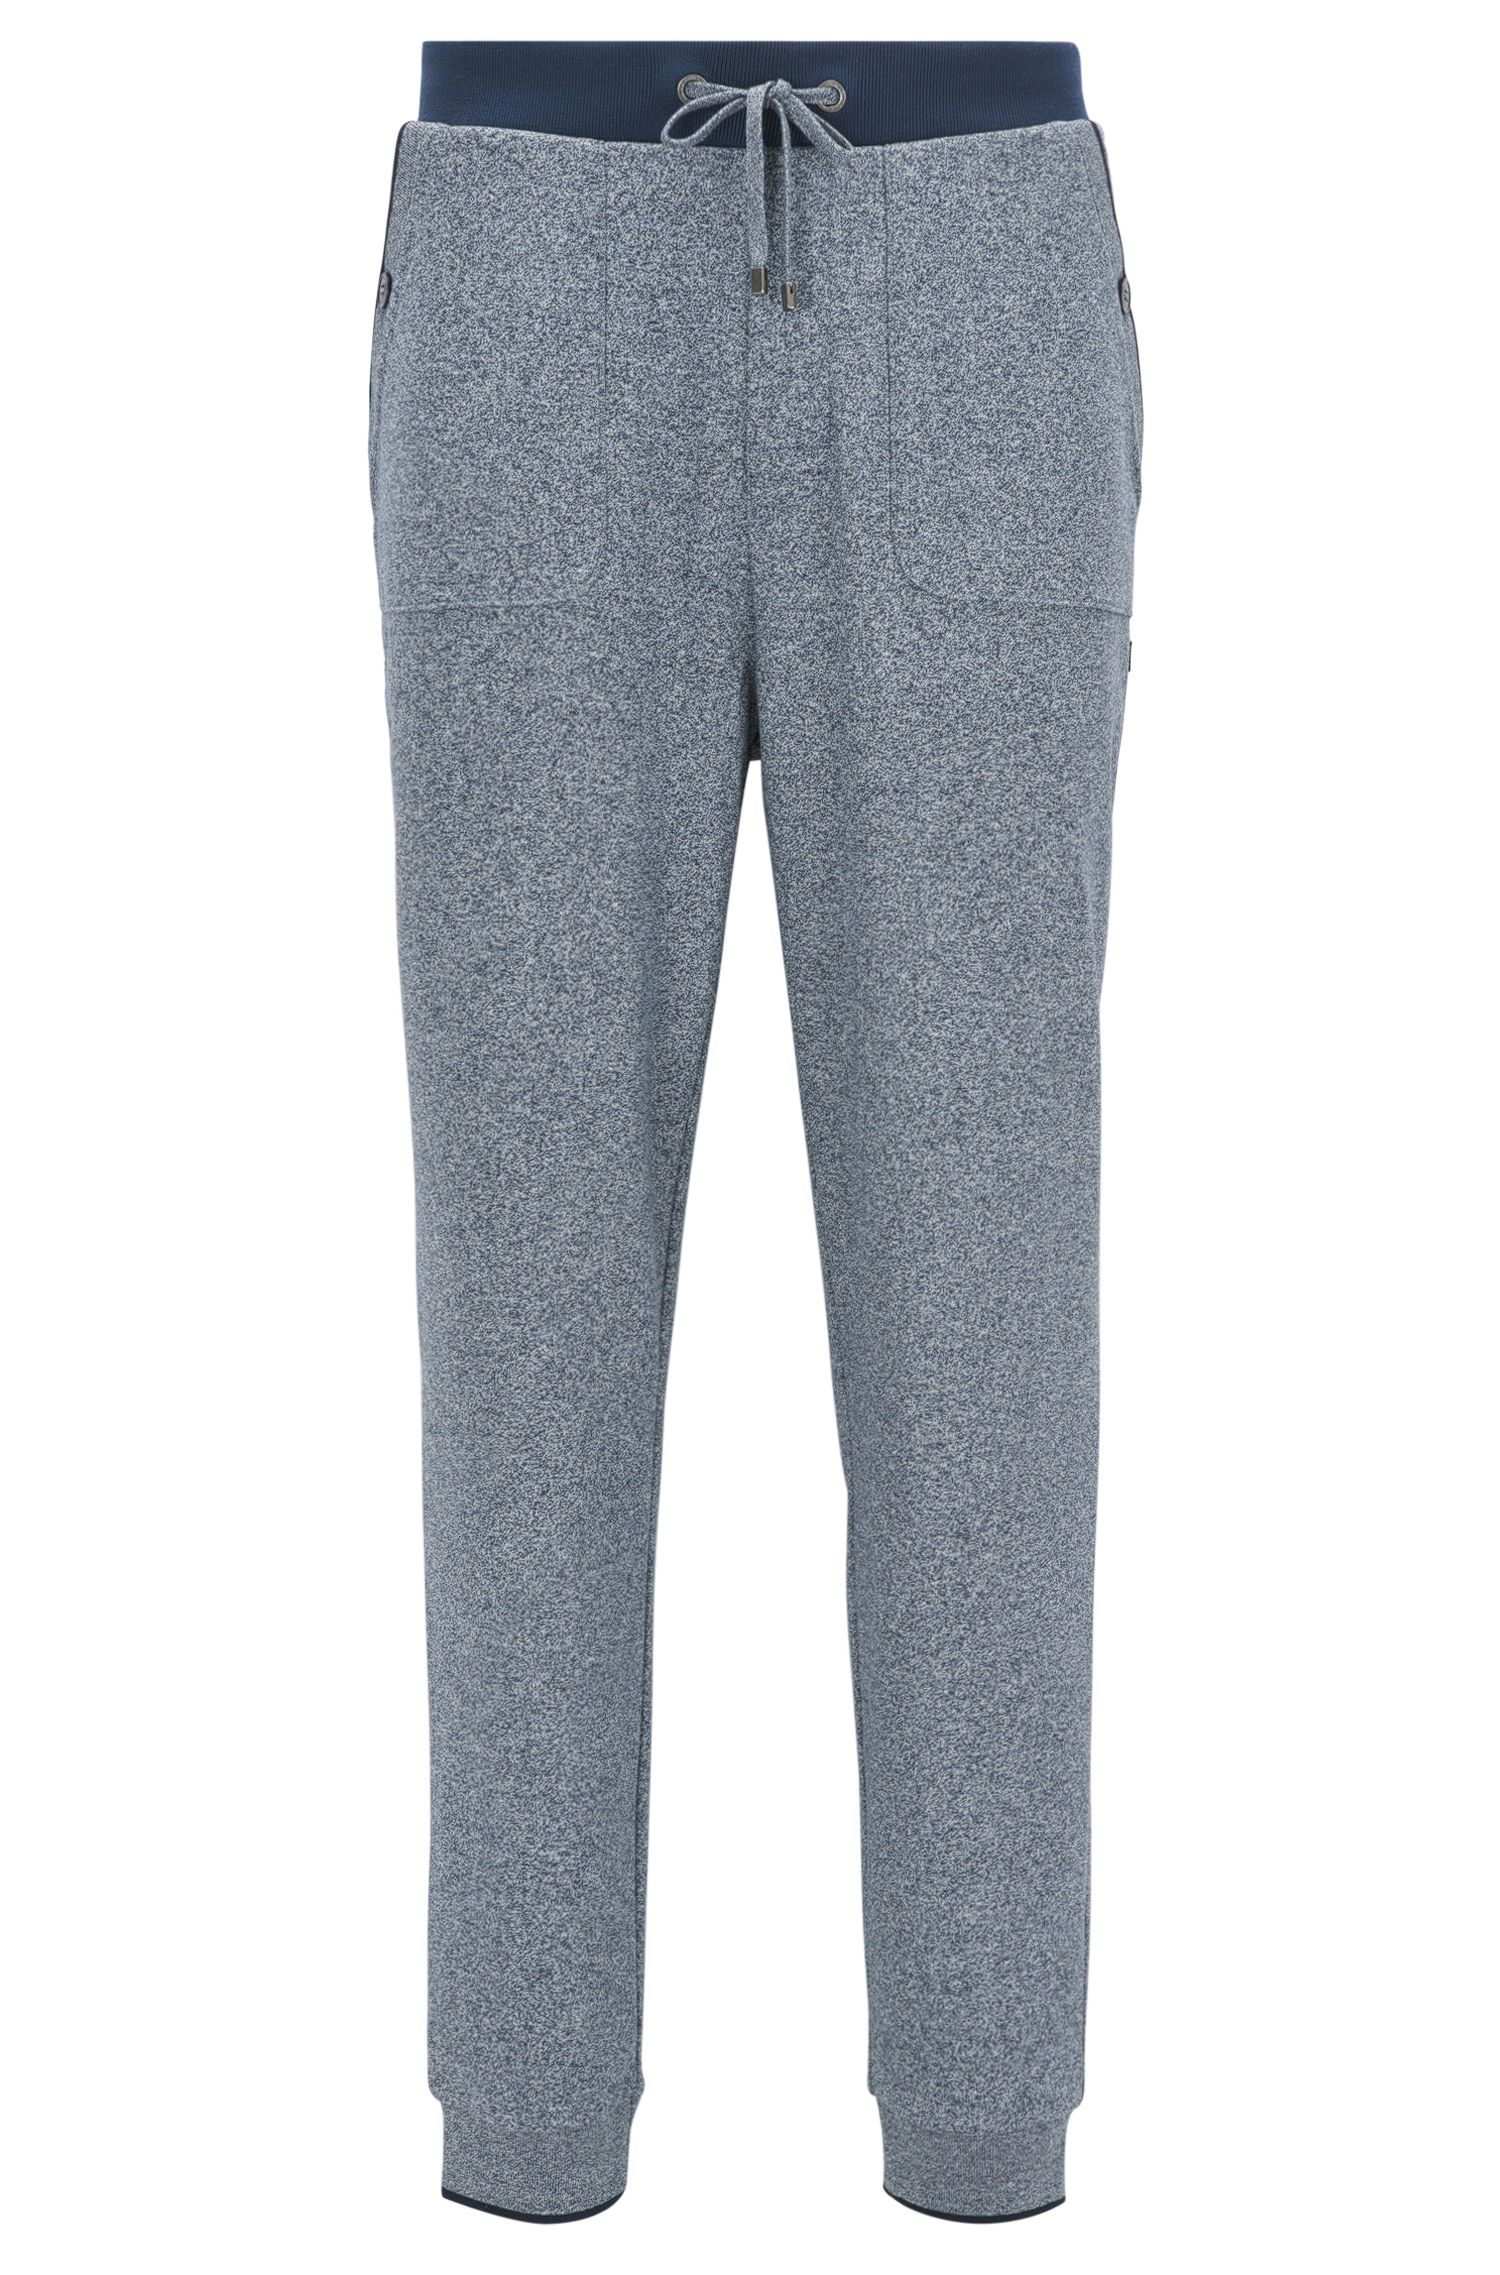 Loungewear trousers in a cotton blend